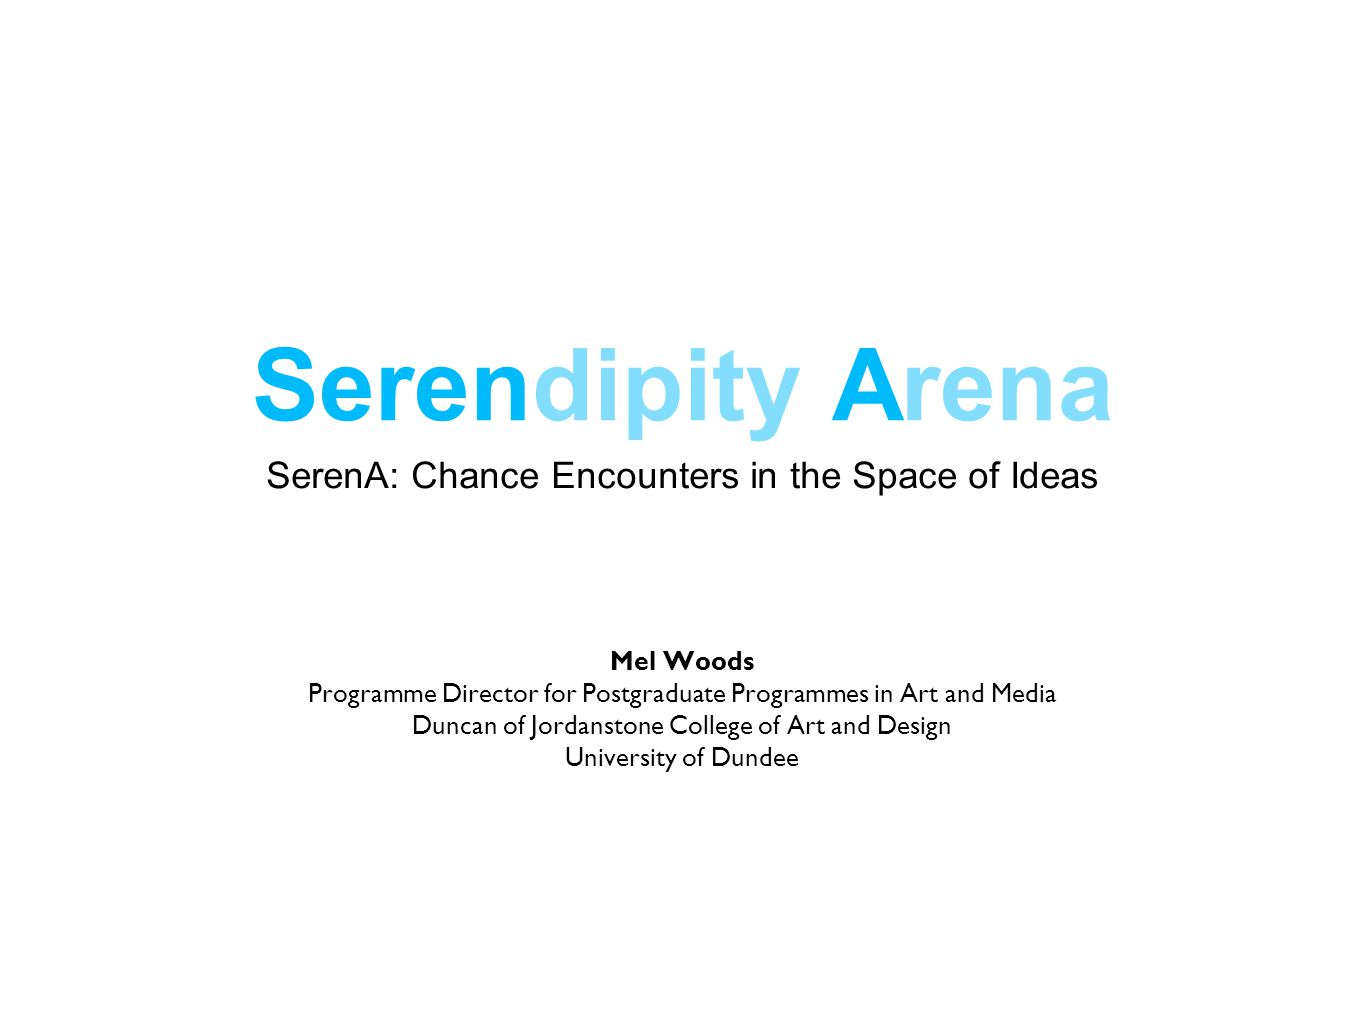 Serendipity Arena Chance Encounters in the Space of Ideas A £1.87 million UKRC funded project, which will investigate serendipity, to deliver new understanding of the role it plays in research and innovation in the digital economy.